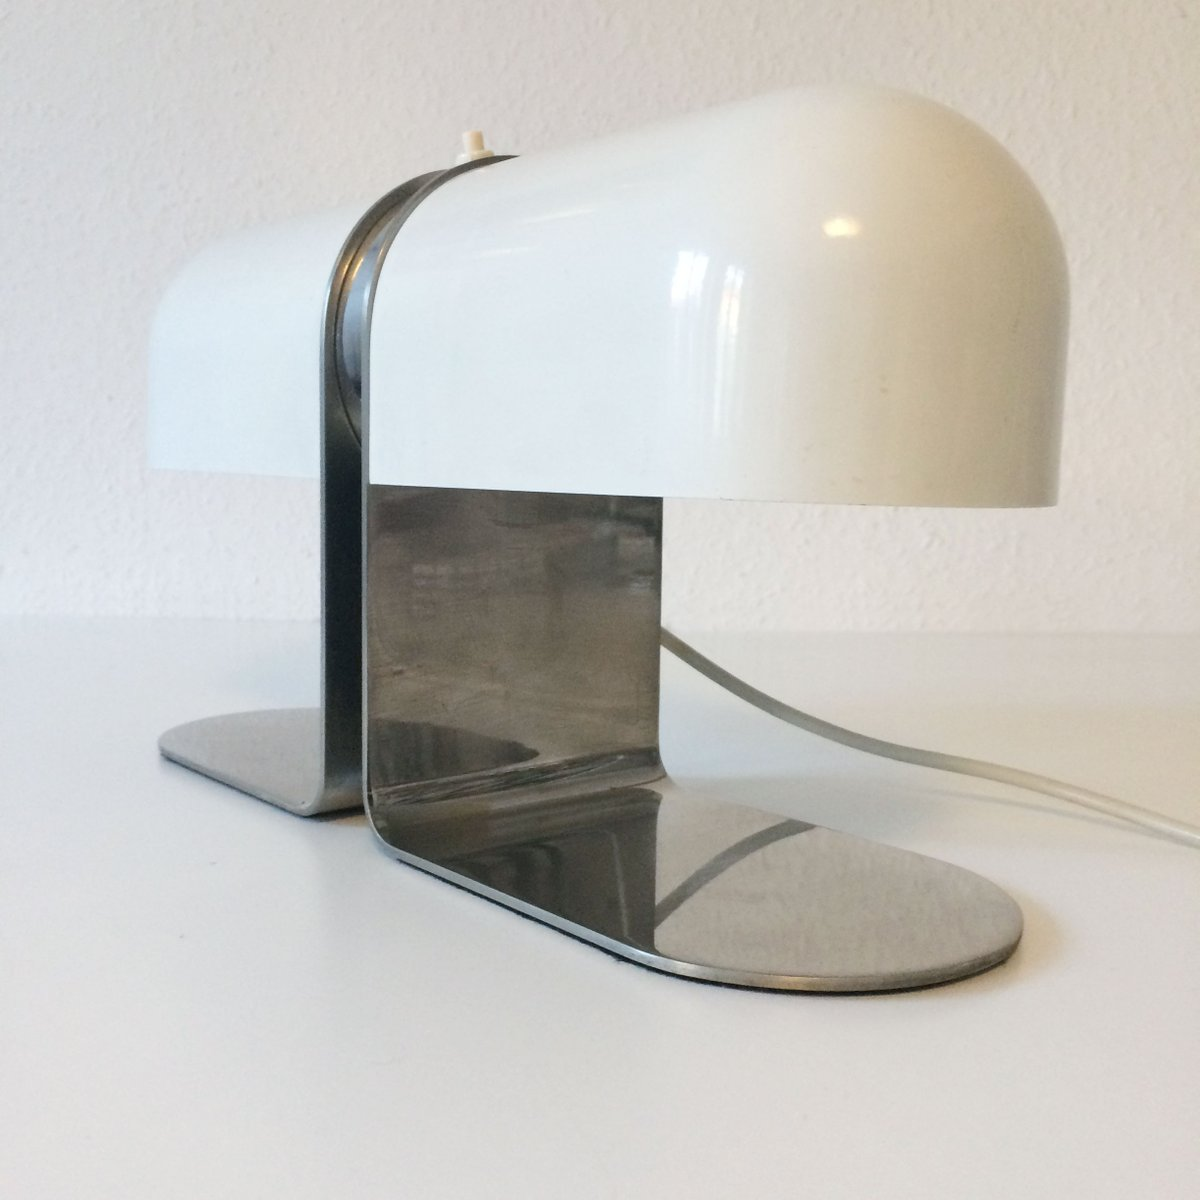 Mid century modern table lamp by andre ricard for metalarte for mid century modern table lamp by andre ricard for metalarte for sale at pamono geotapseo Image collections